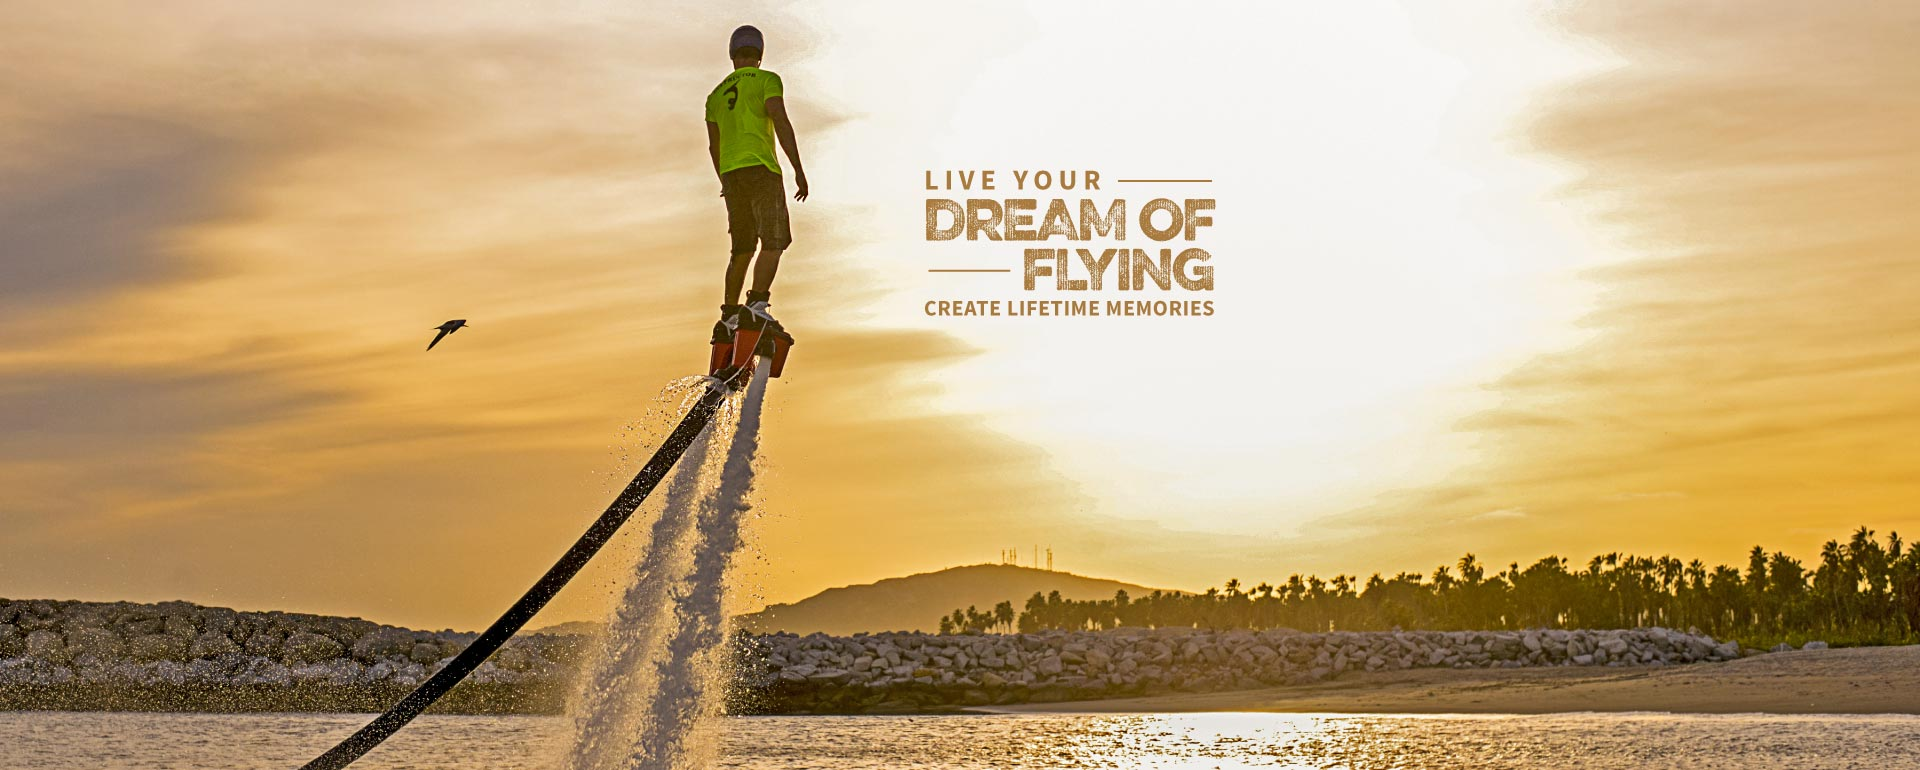 San Jose del Cabo Flyboard